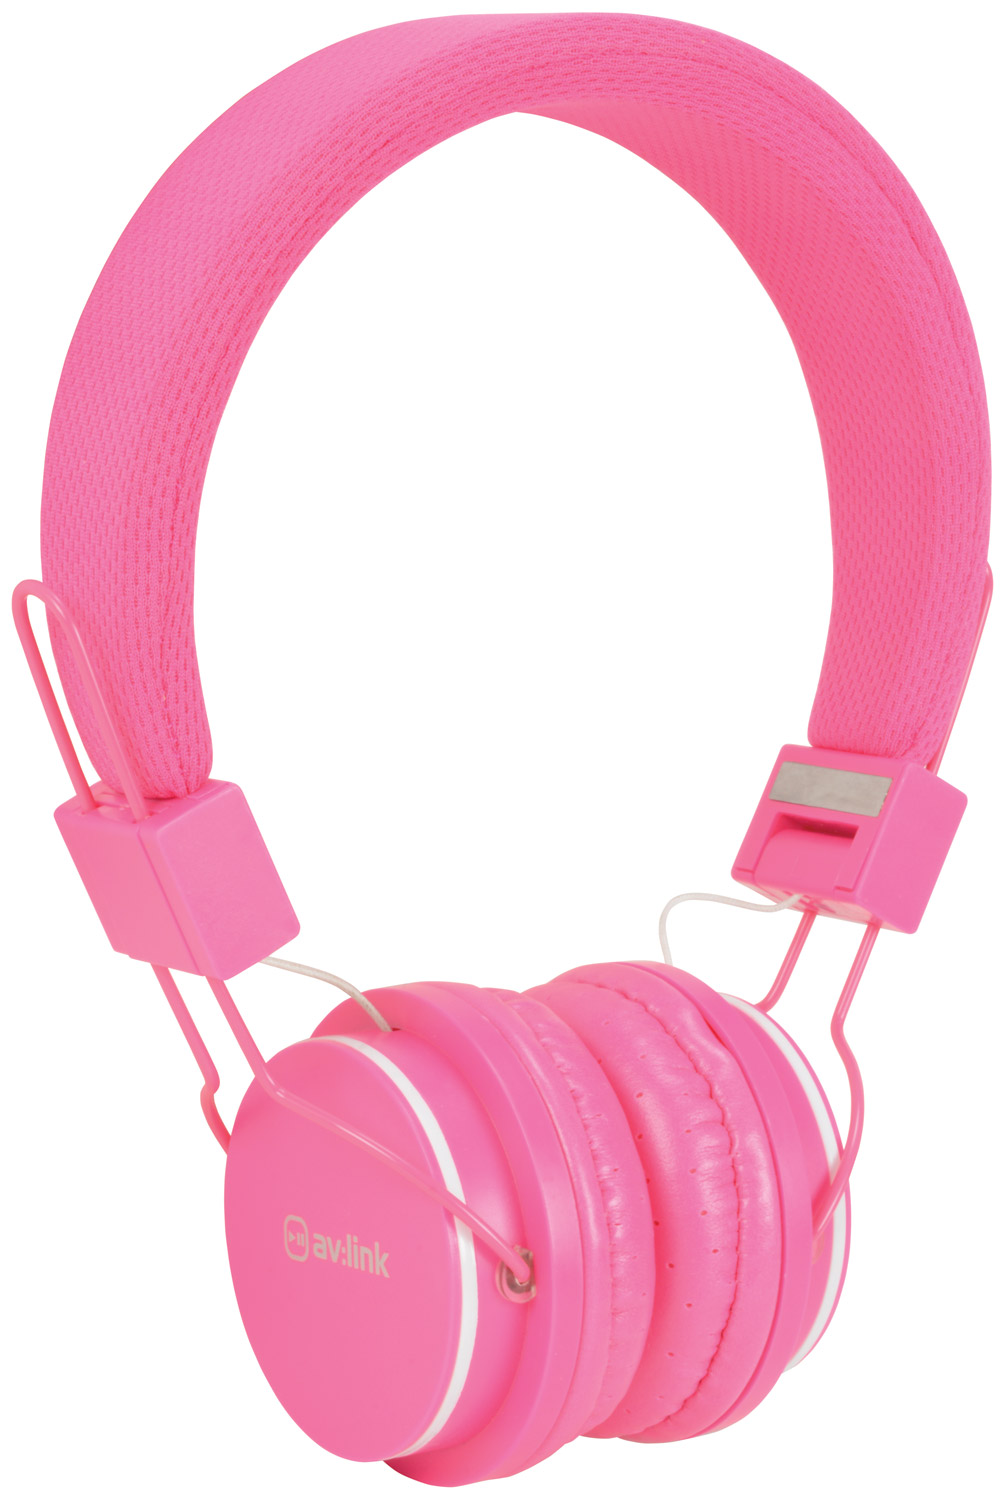 Educational Headphones Pink